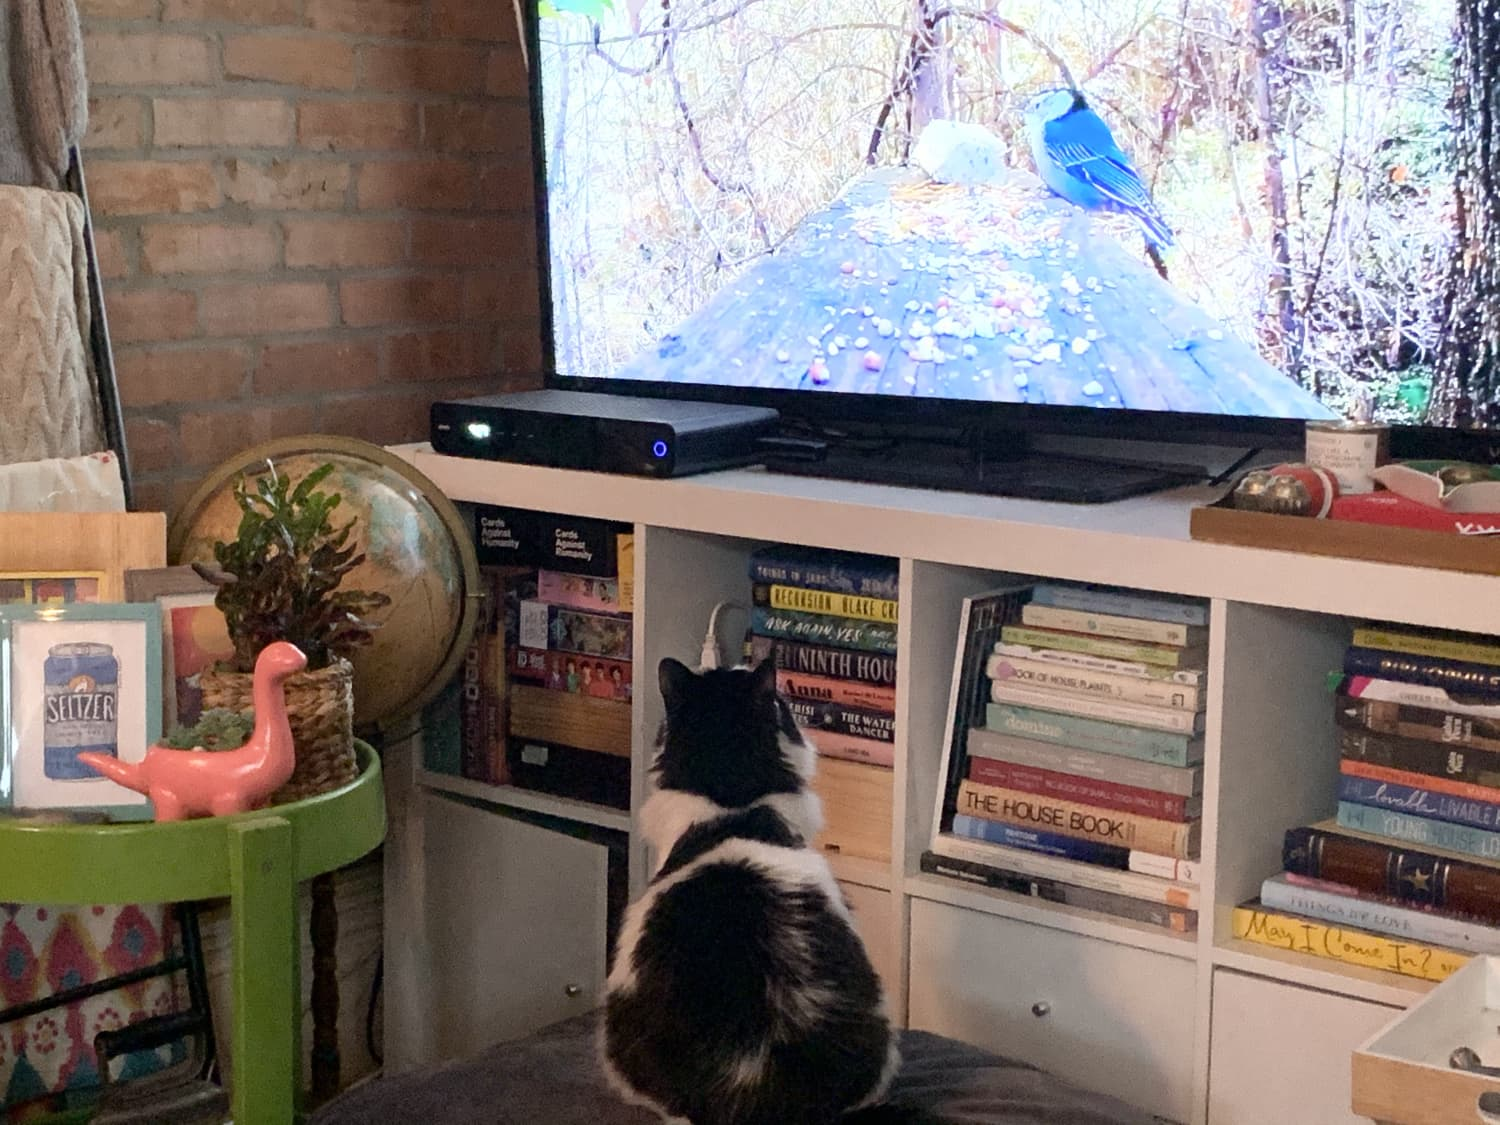 Amazon Prime Has Free 'Cat TV' That You Can Stream for Your Pets